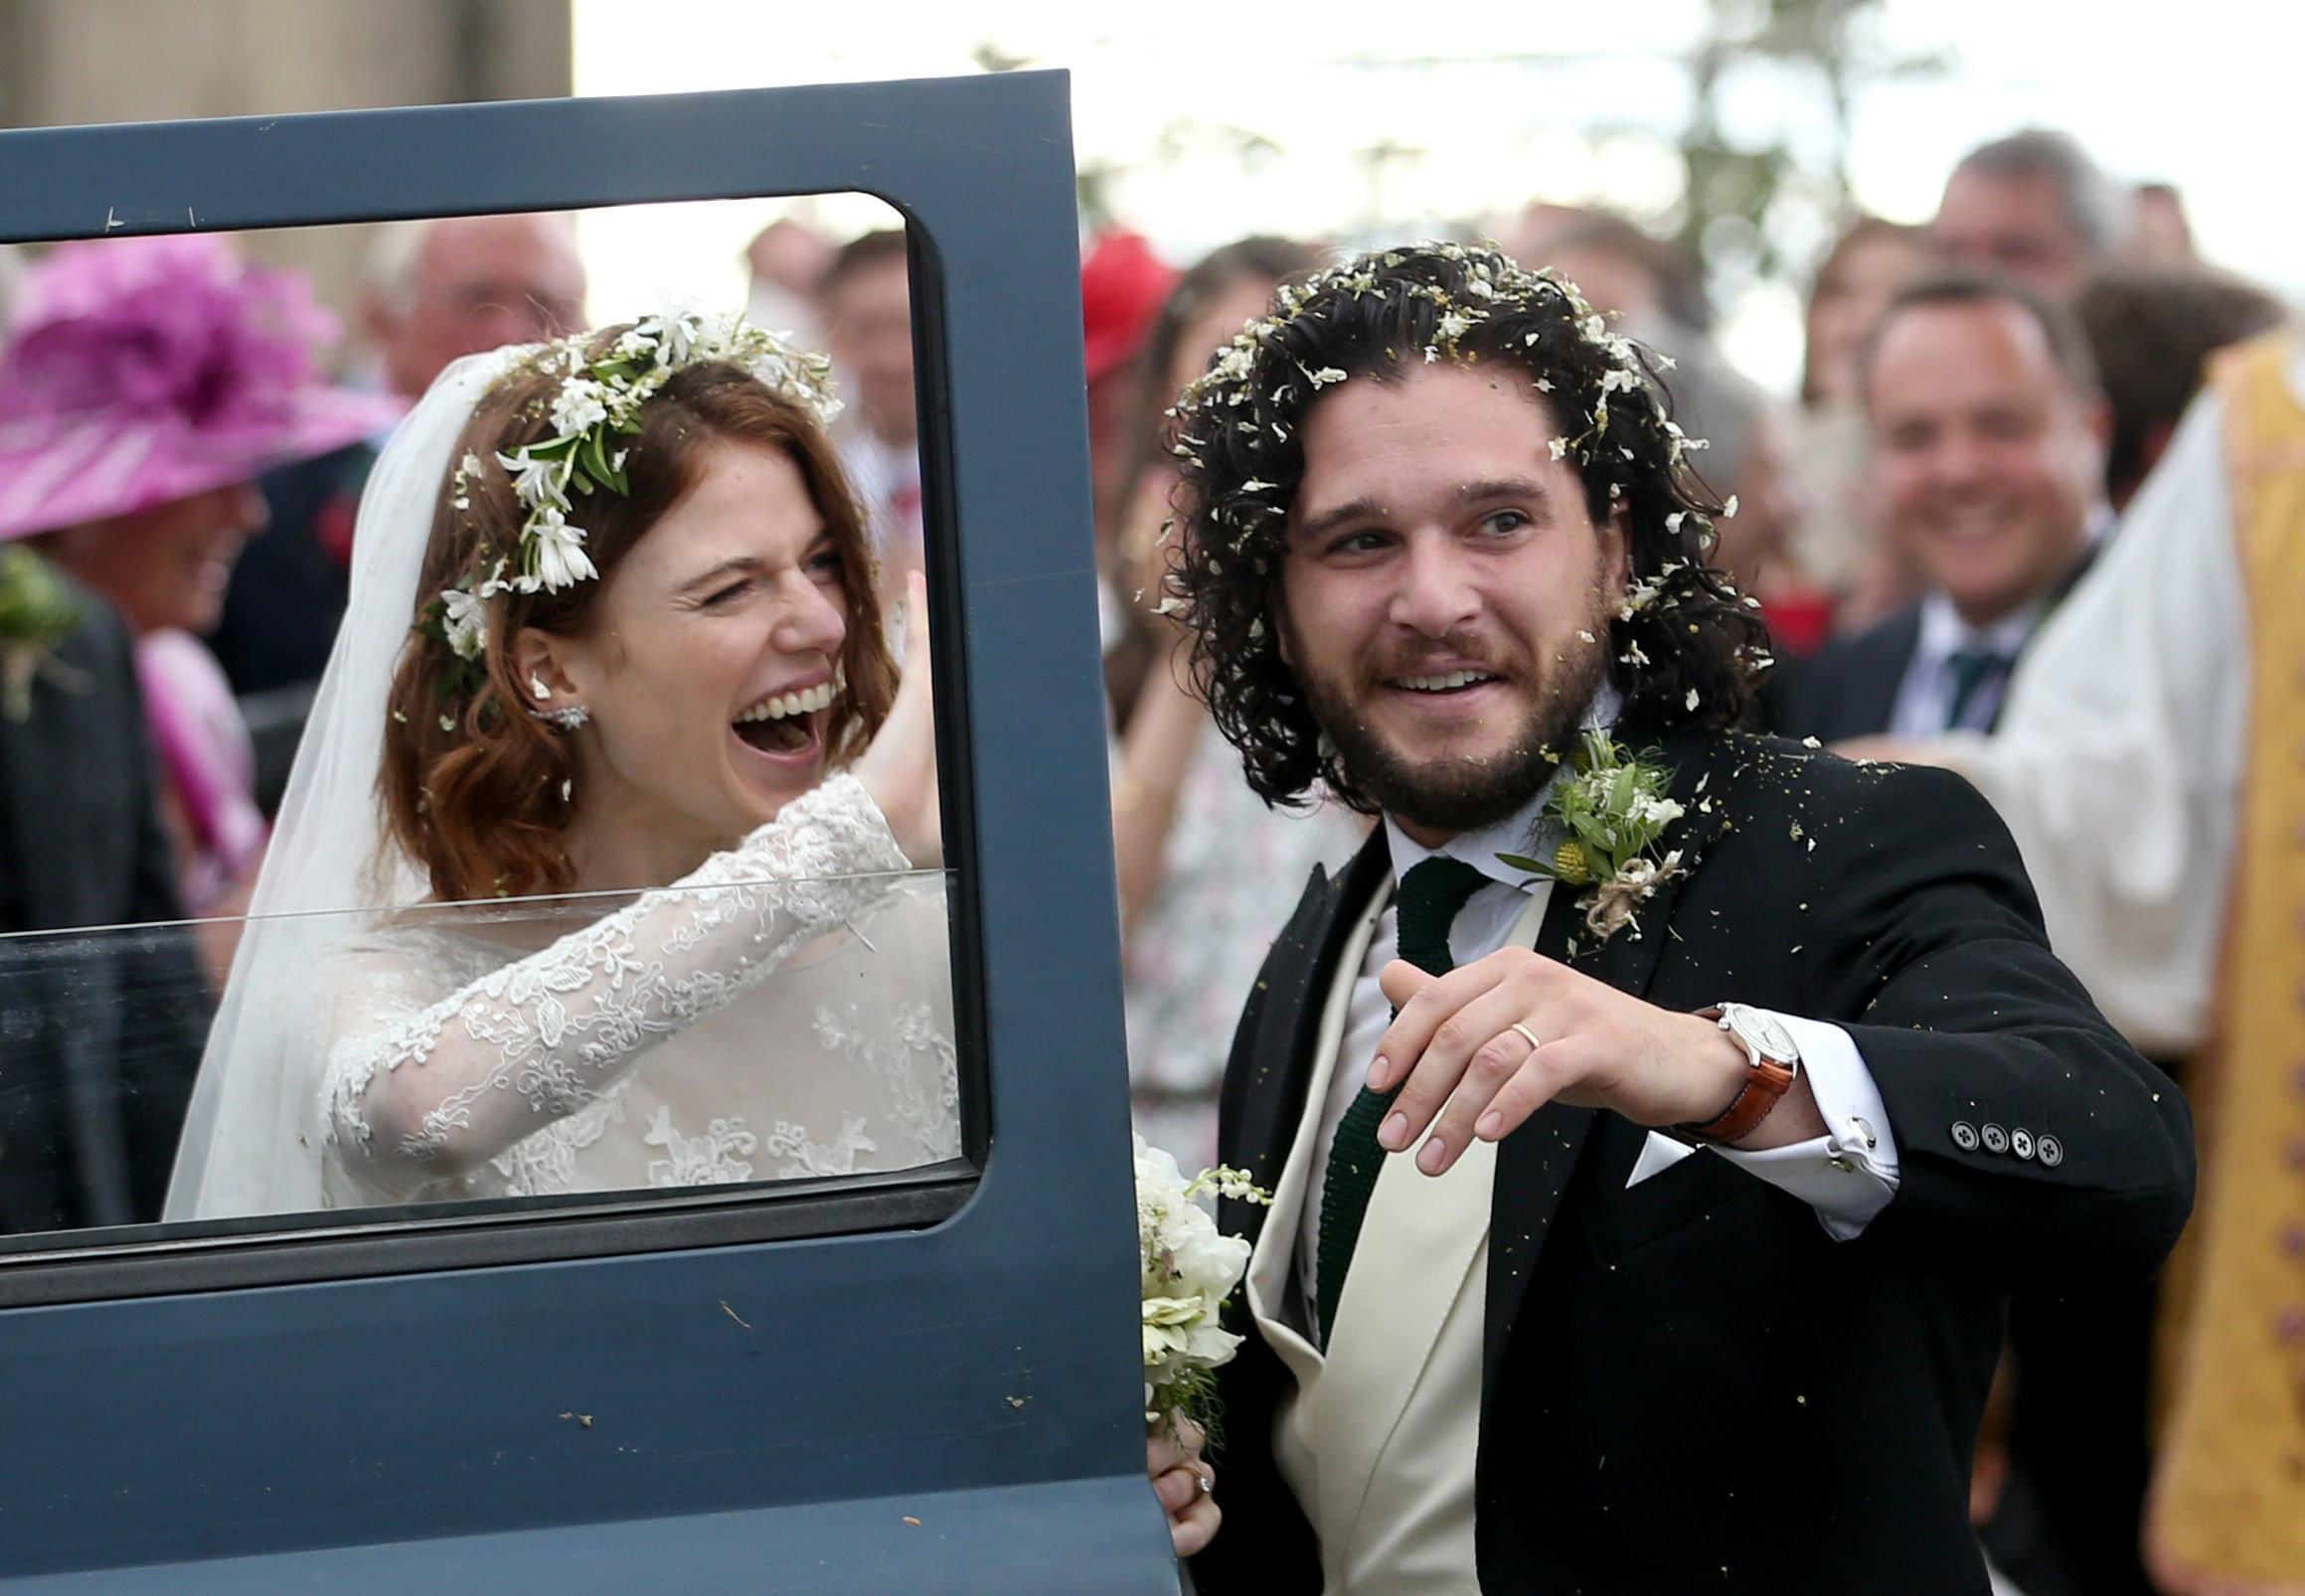 A LOOK AT 'GAME OF THRONES' STARS KIT HARINGTON & ROSE LESLIE'S WEDDING